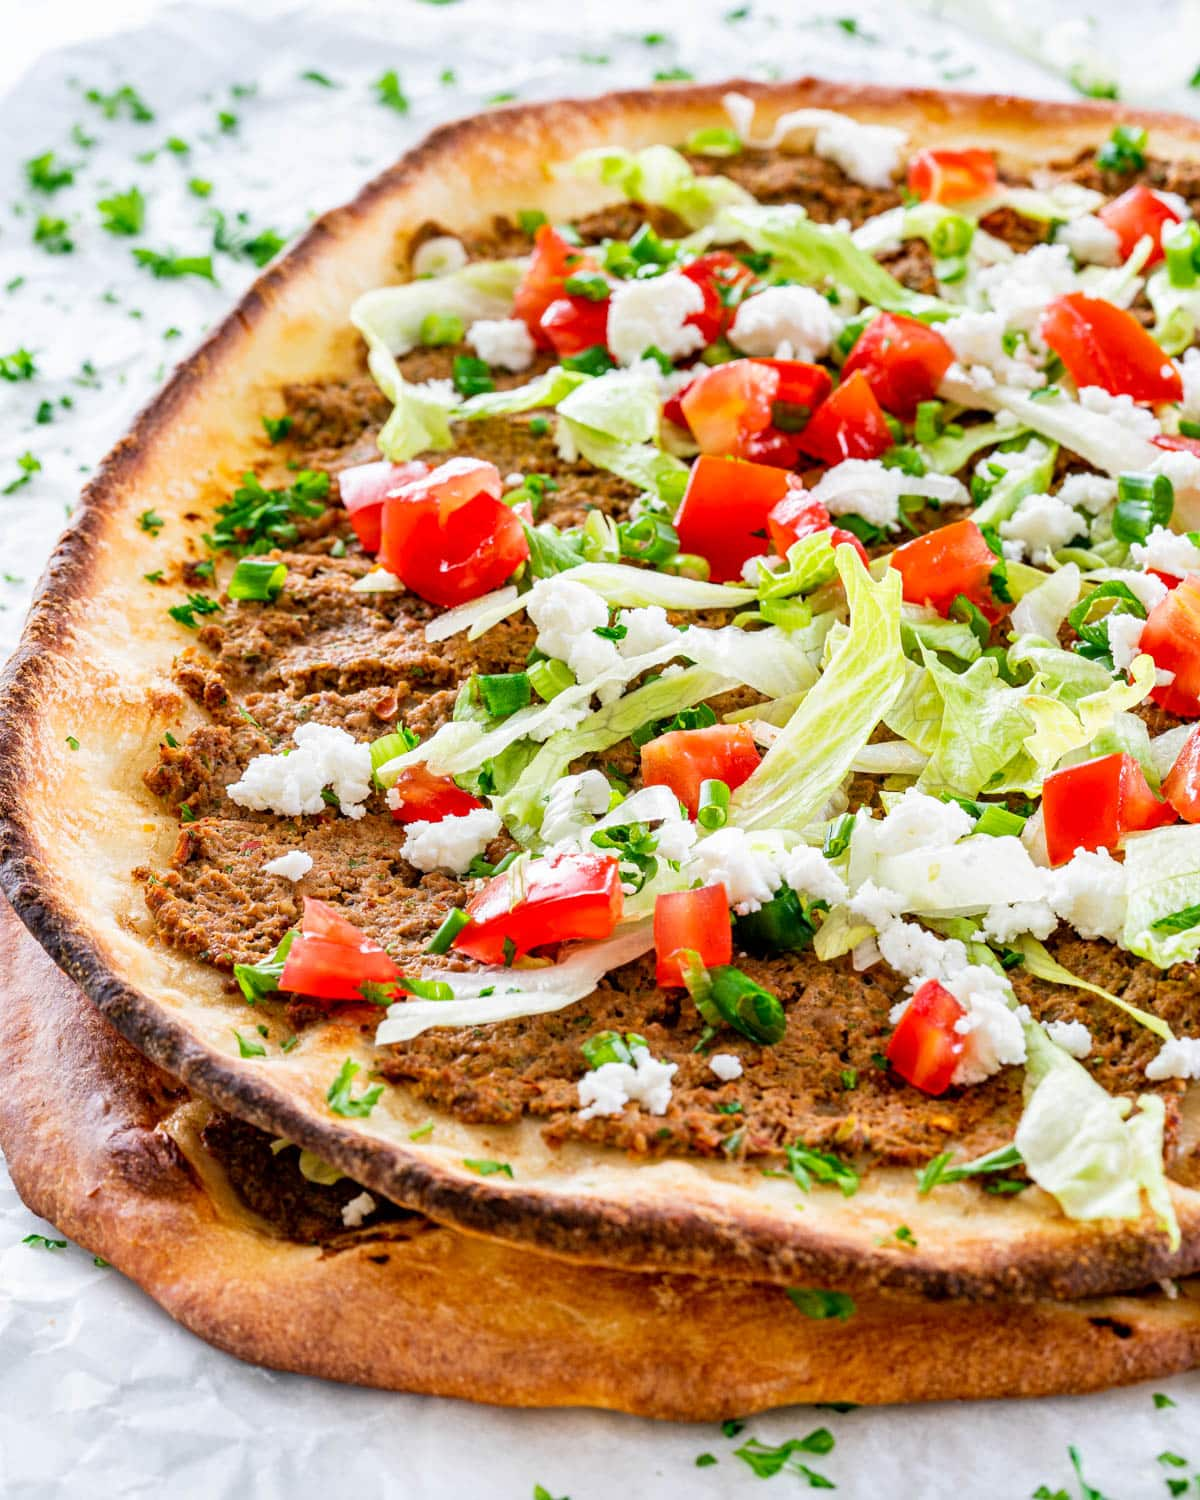 two lahmacun pies stacked garnished with lettuce, tomatoes and feta cheese